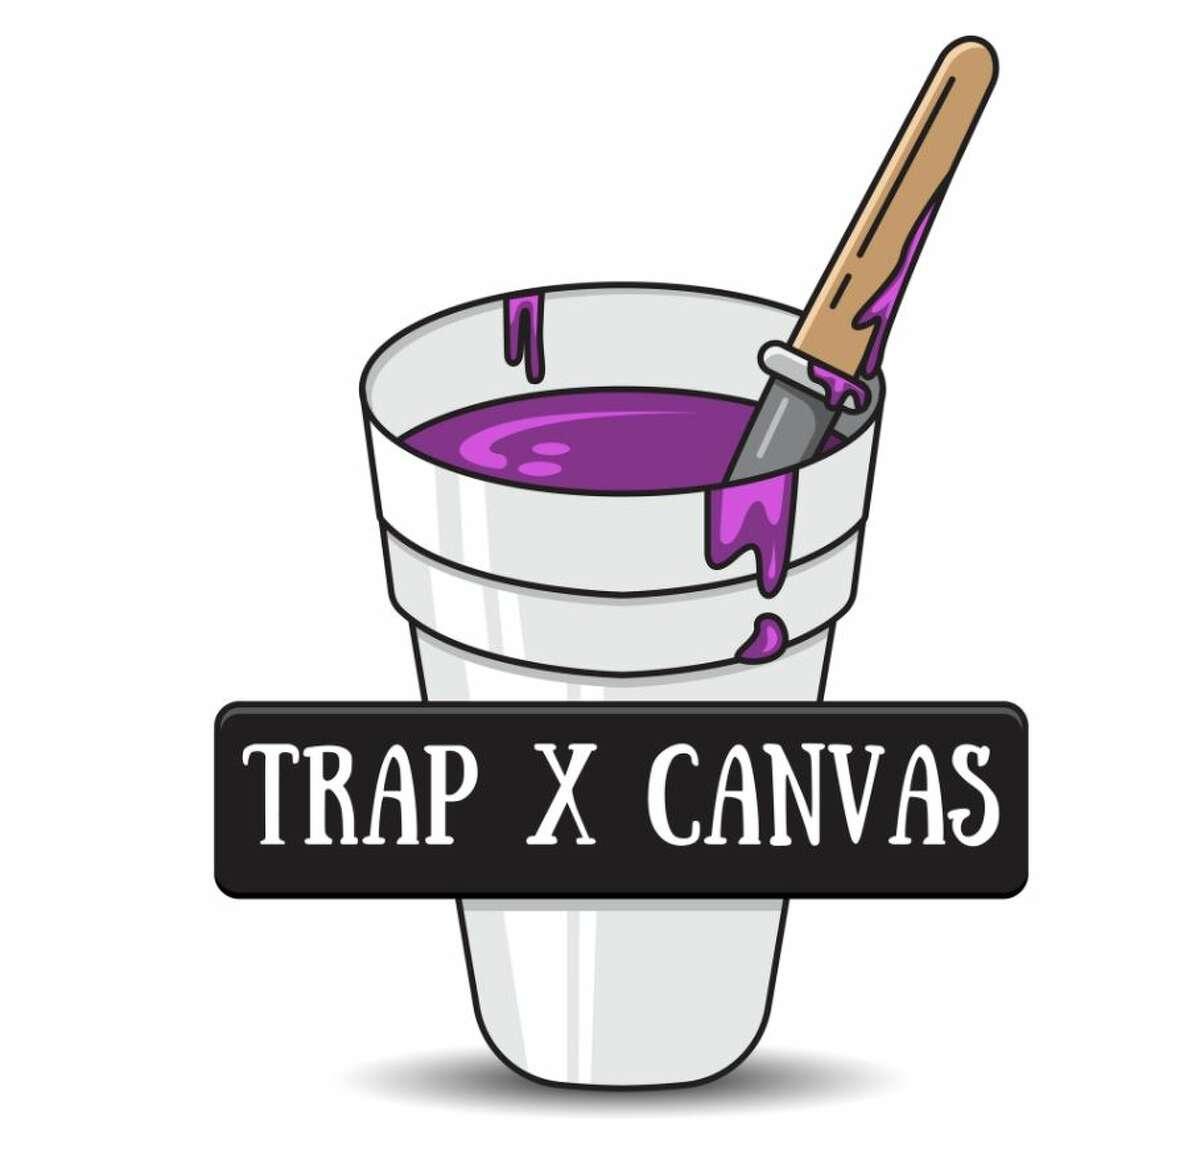 """TrapxCanvas is bringing a different kind of painting with a twist to San Antonio. The business, which dubs itself as """"not your average paint and sip,"""" is hosting an event at 7 p.m. on Saturday at the Sheraton Gunter Hotel, located at 205 E. Houston St. Tickets are $35 each."""